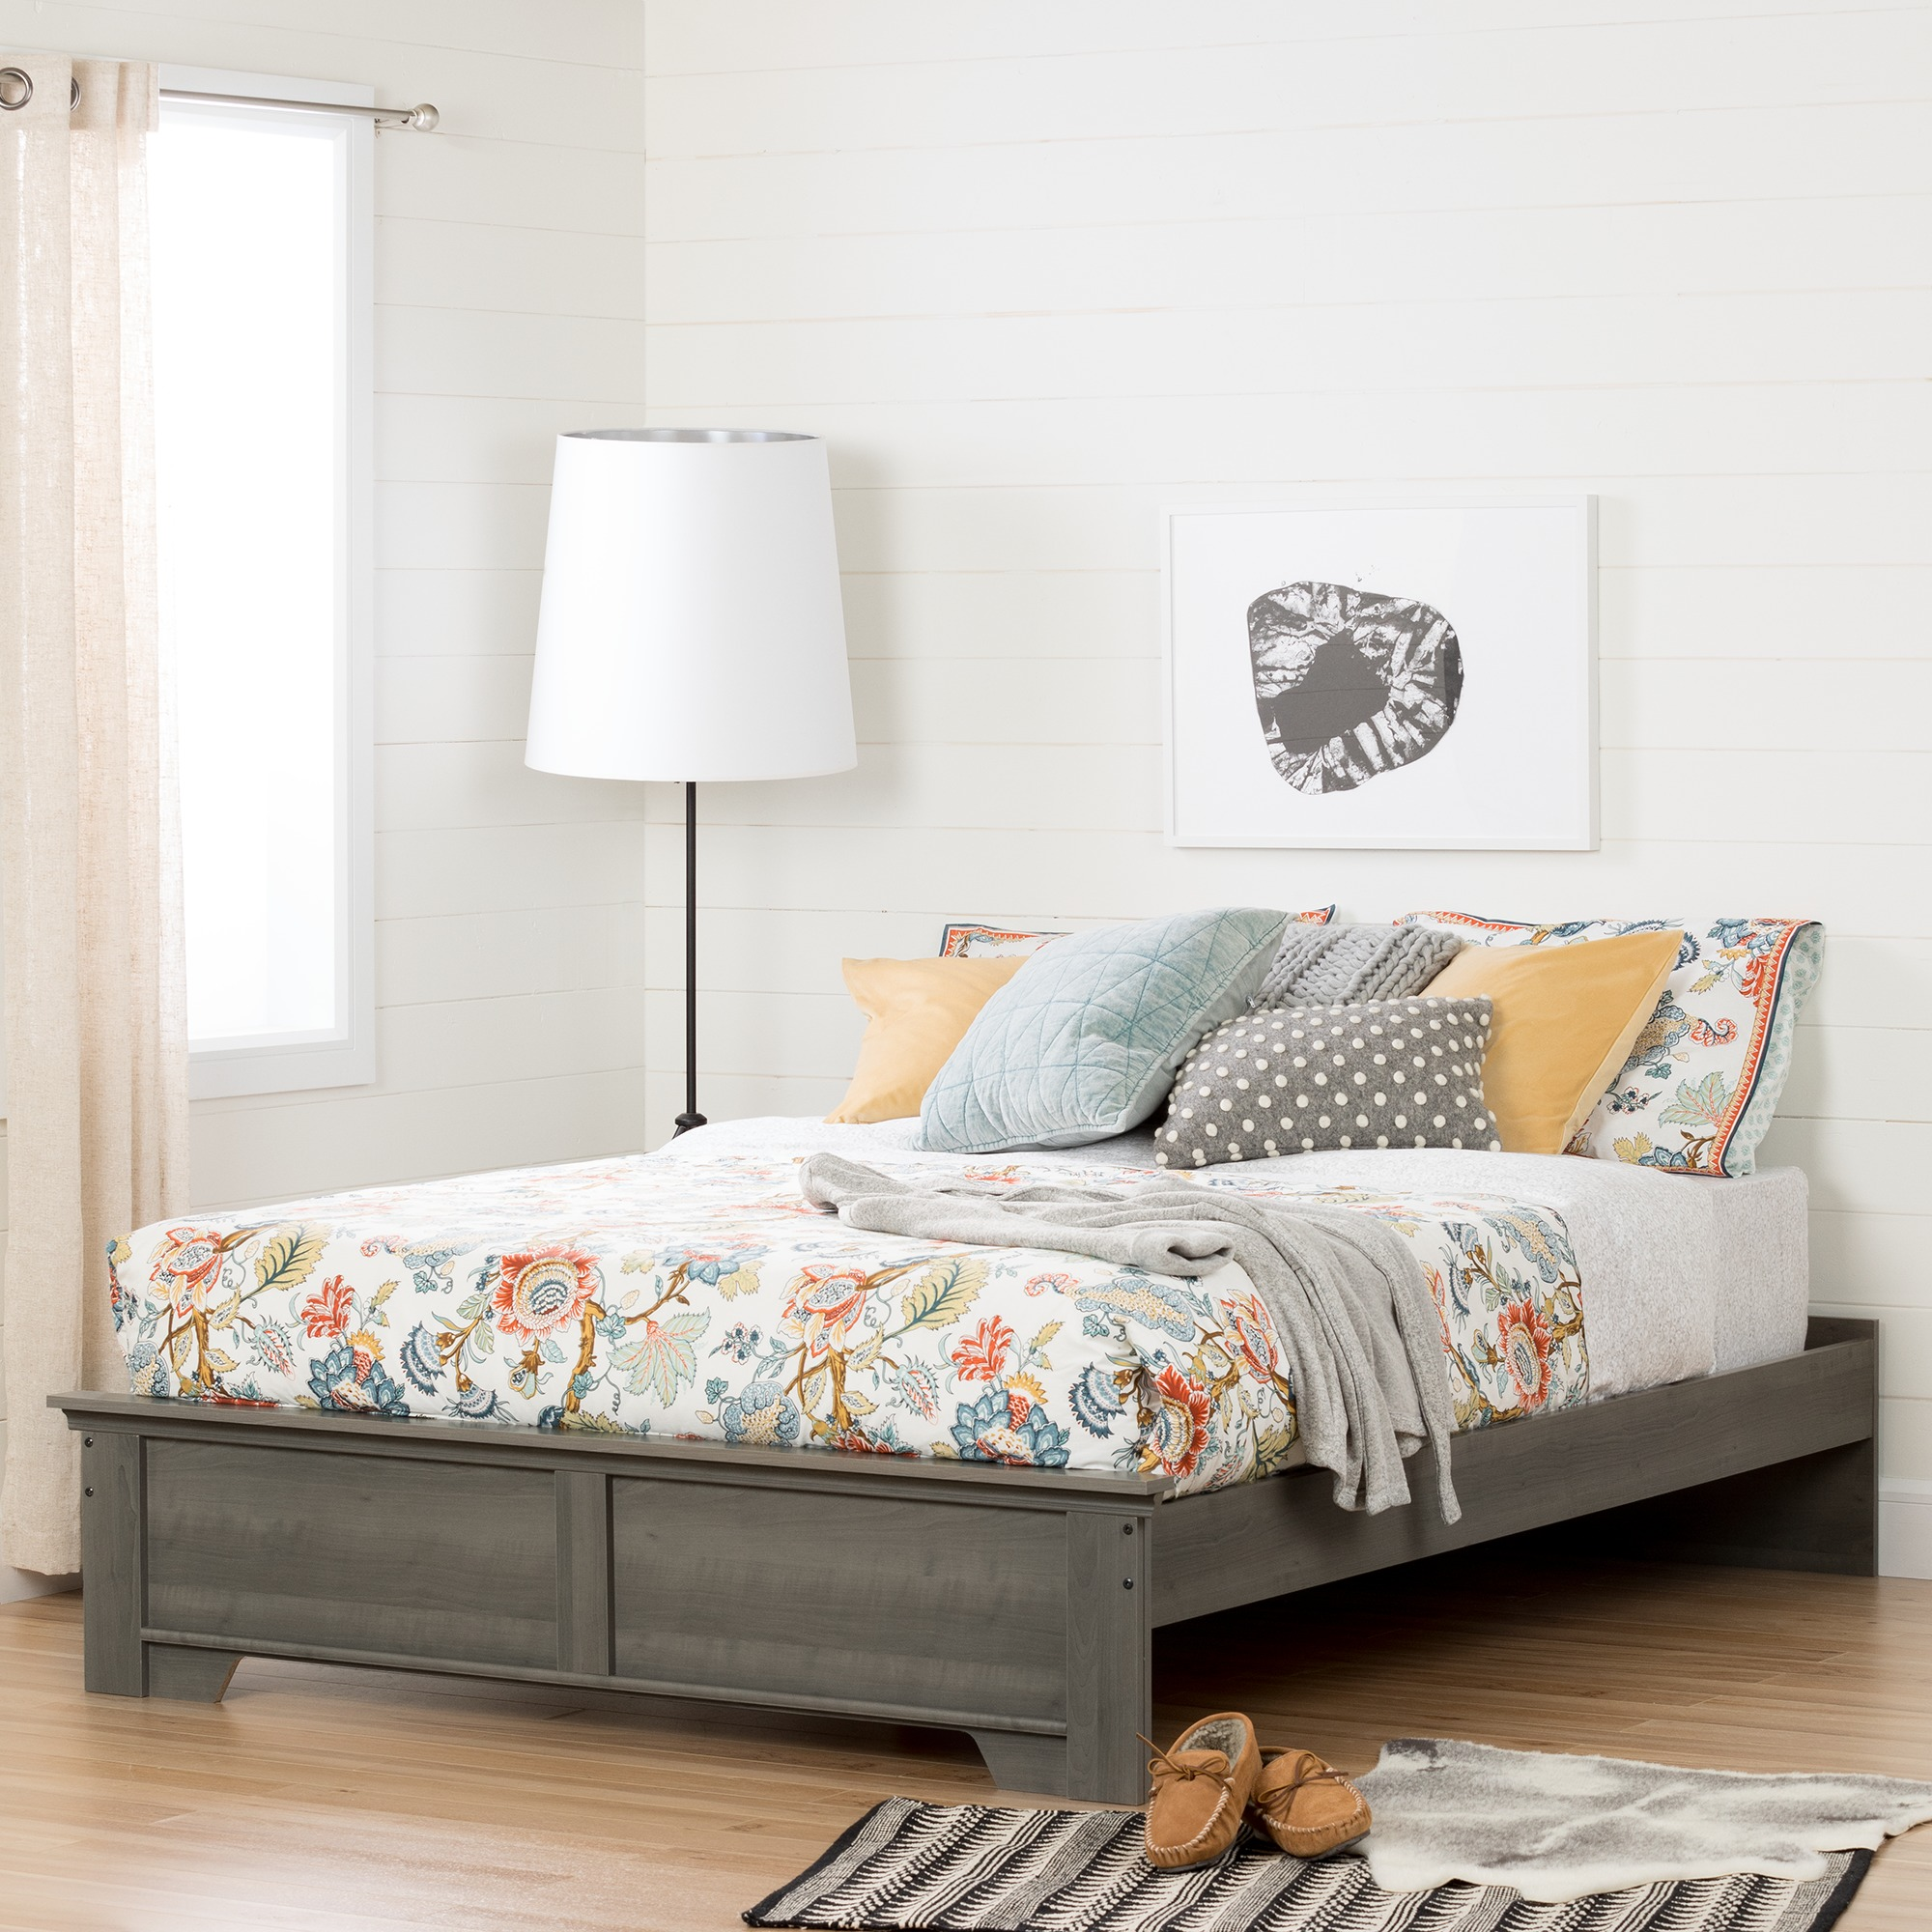 South Shore Versa Queen Platform Bed (60''), Multiple Finishes